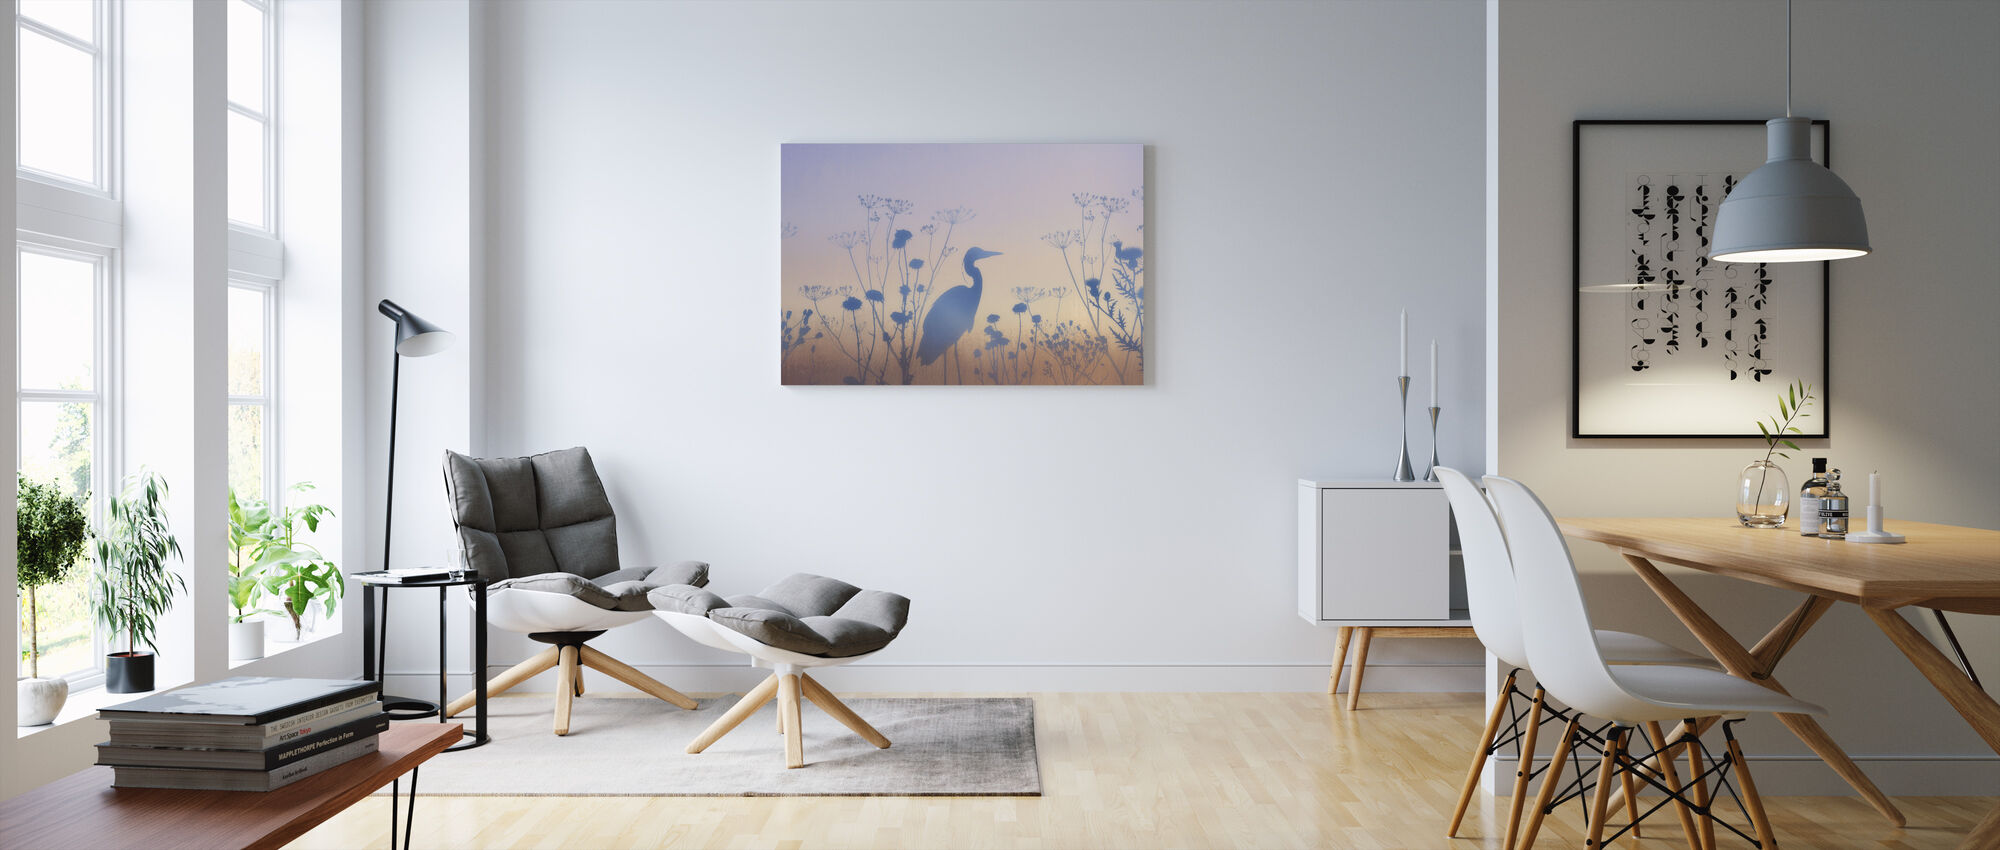 Blue Dawn Silhouettes - Canvas print - Living Room